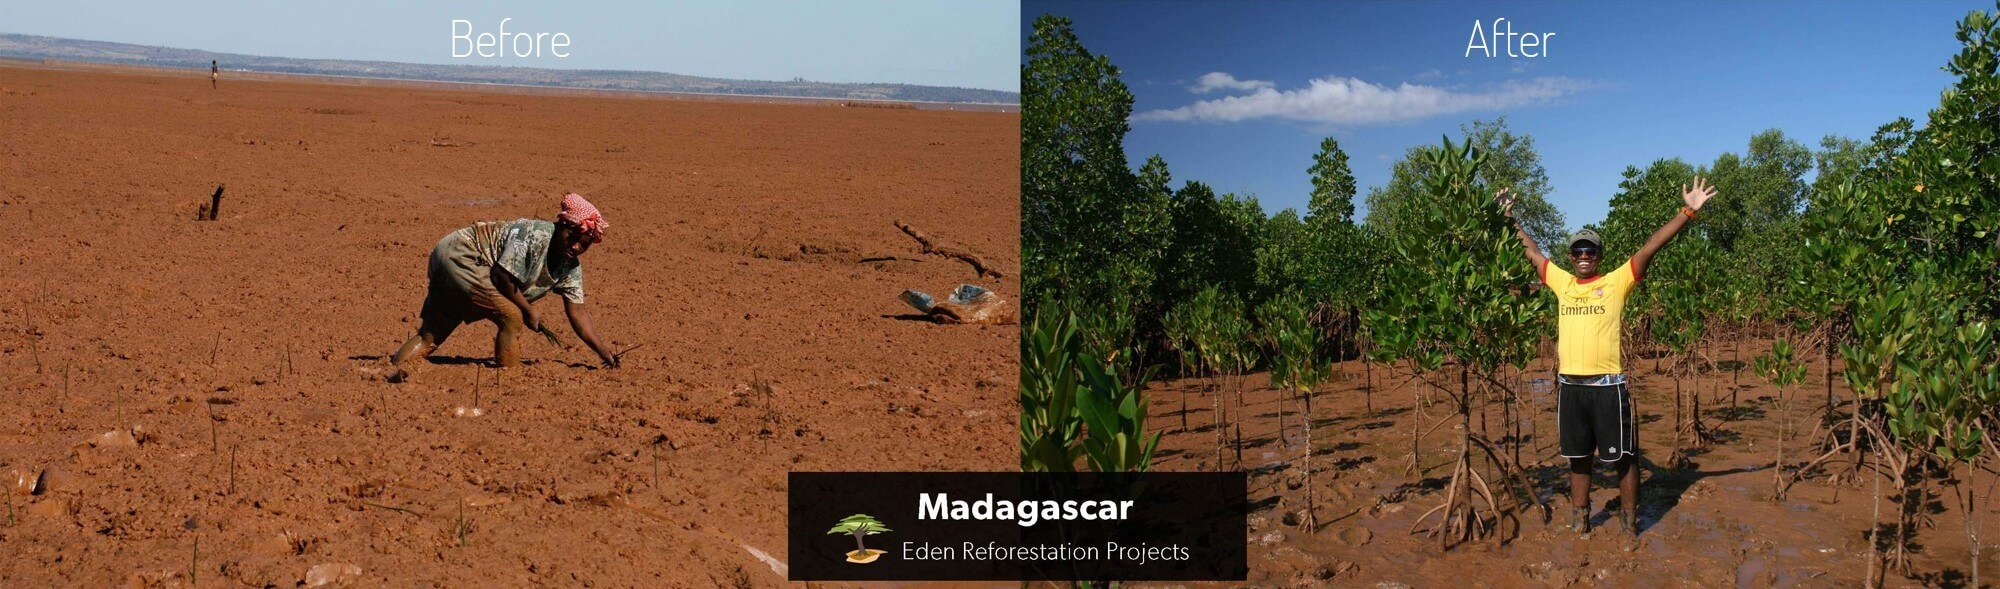 Eden Reforestation Project supported by Oceanness: Tree planting in Madagascar mangroves. Before and after planting trees.